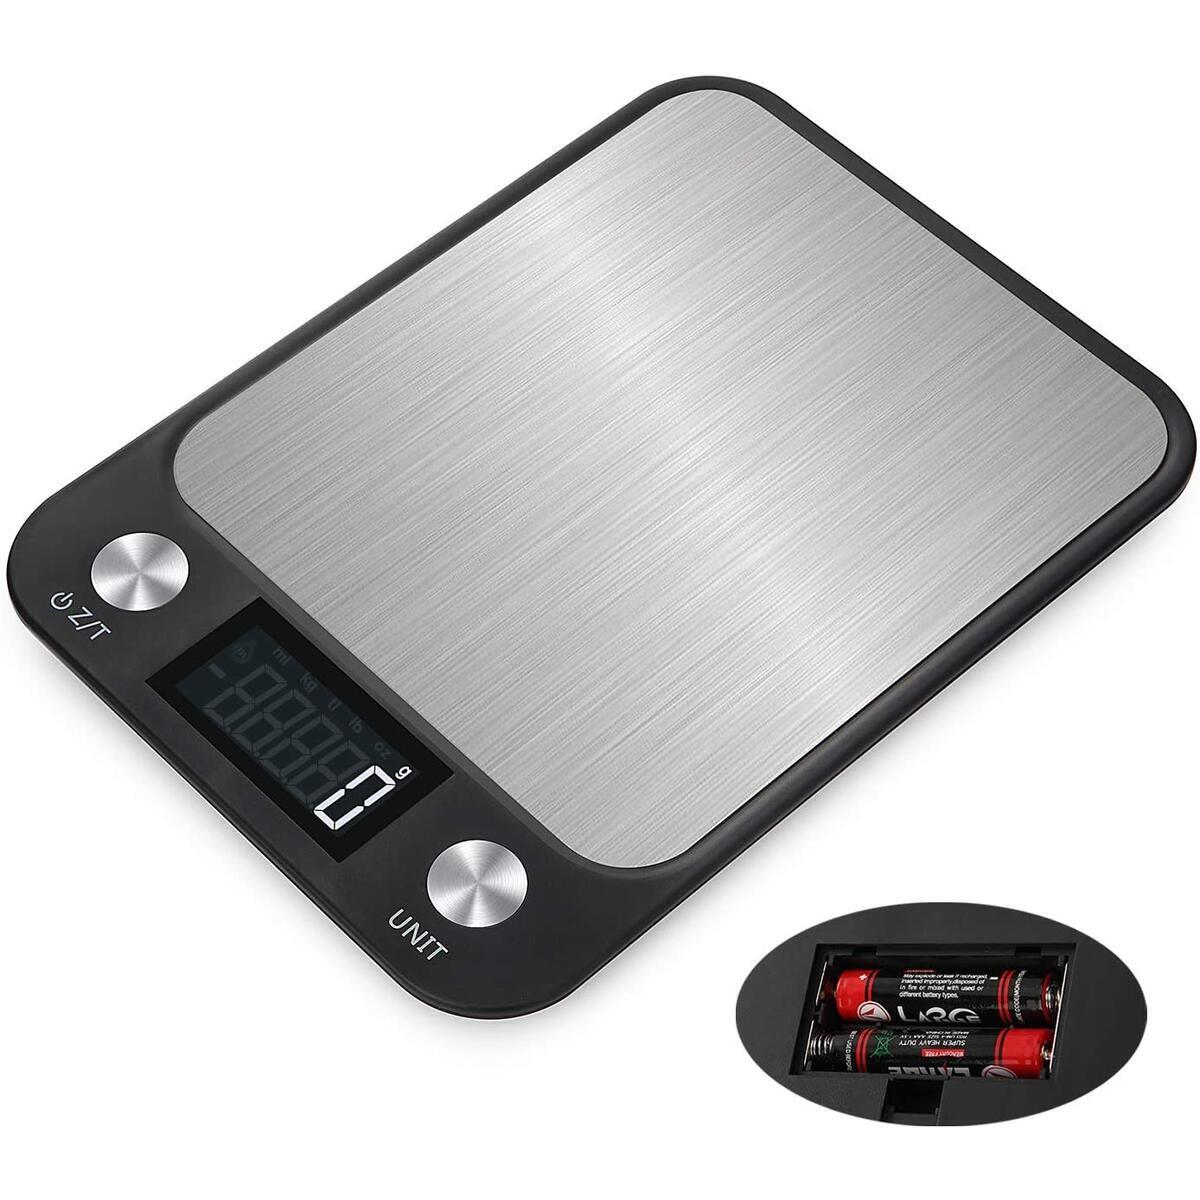 ONEKG Digital Food Kitchen Scale - Max 11lbs/5kg Precise Scale for Cooking and Baking